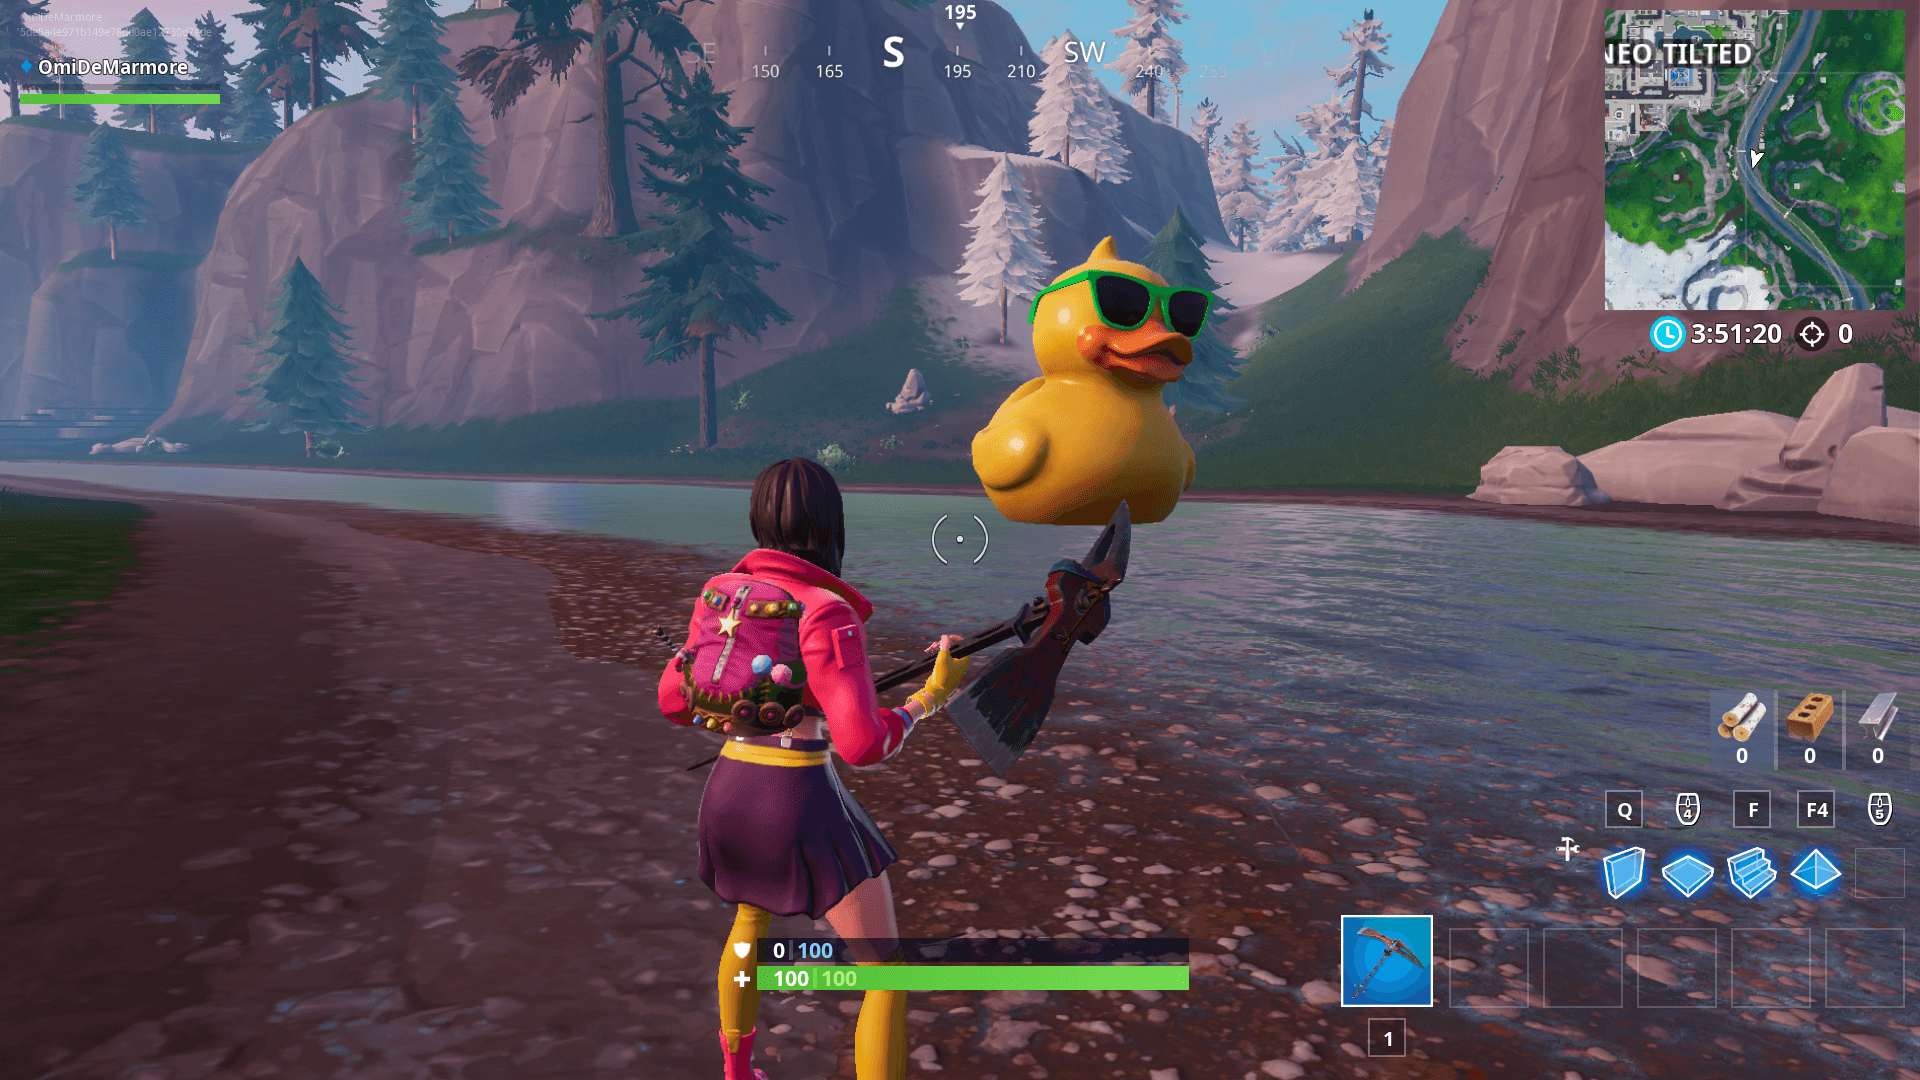 Fortnite Huge Rubber Ducky Location 14 Days Of Summer Dot Esports